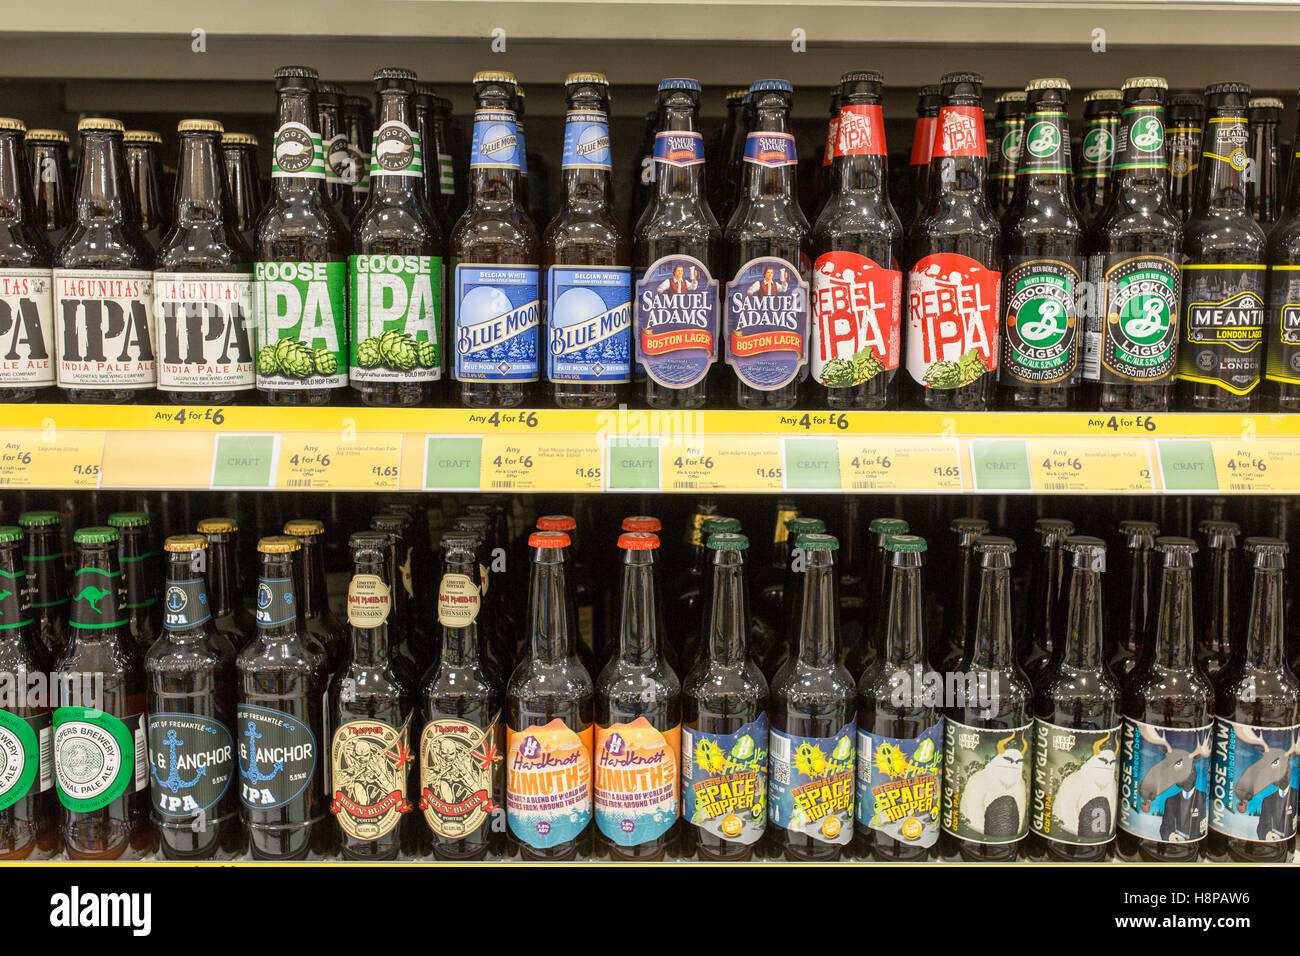 Craft beers on sale inside a British supermarket store - Stock Image